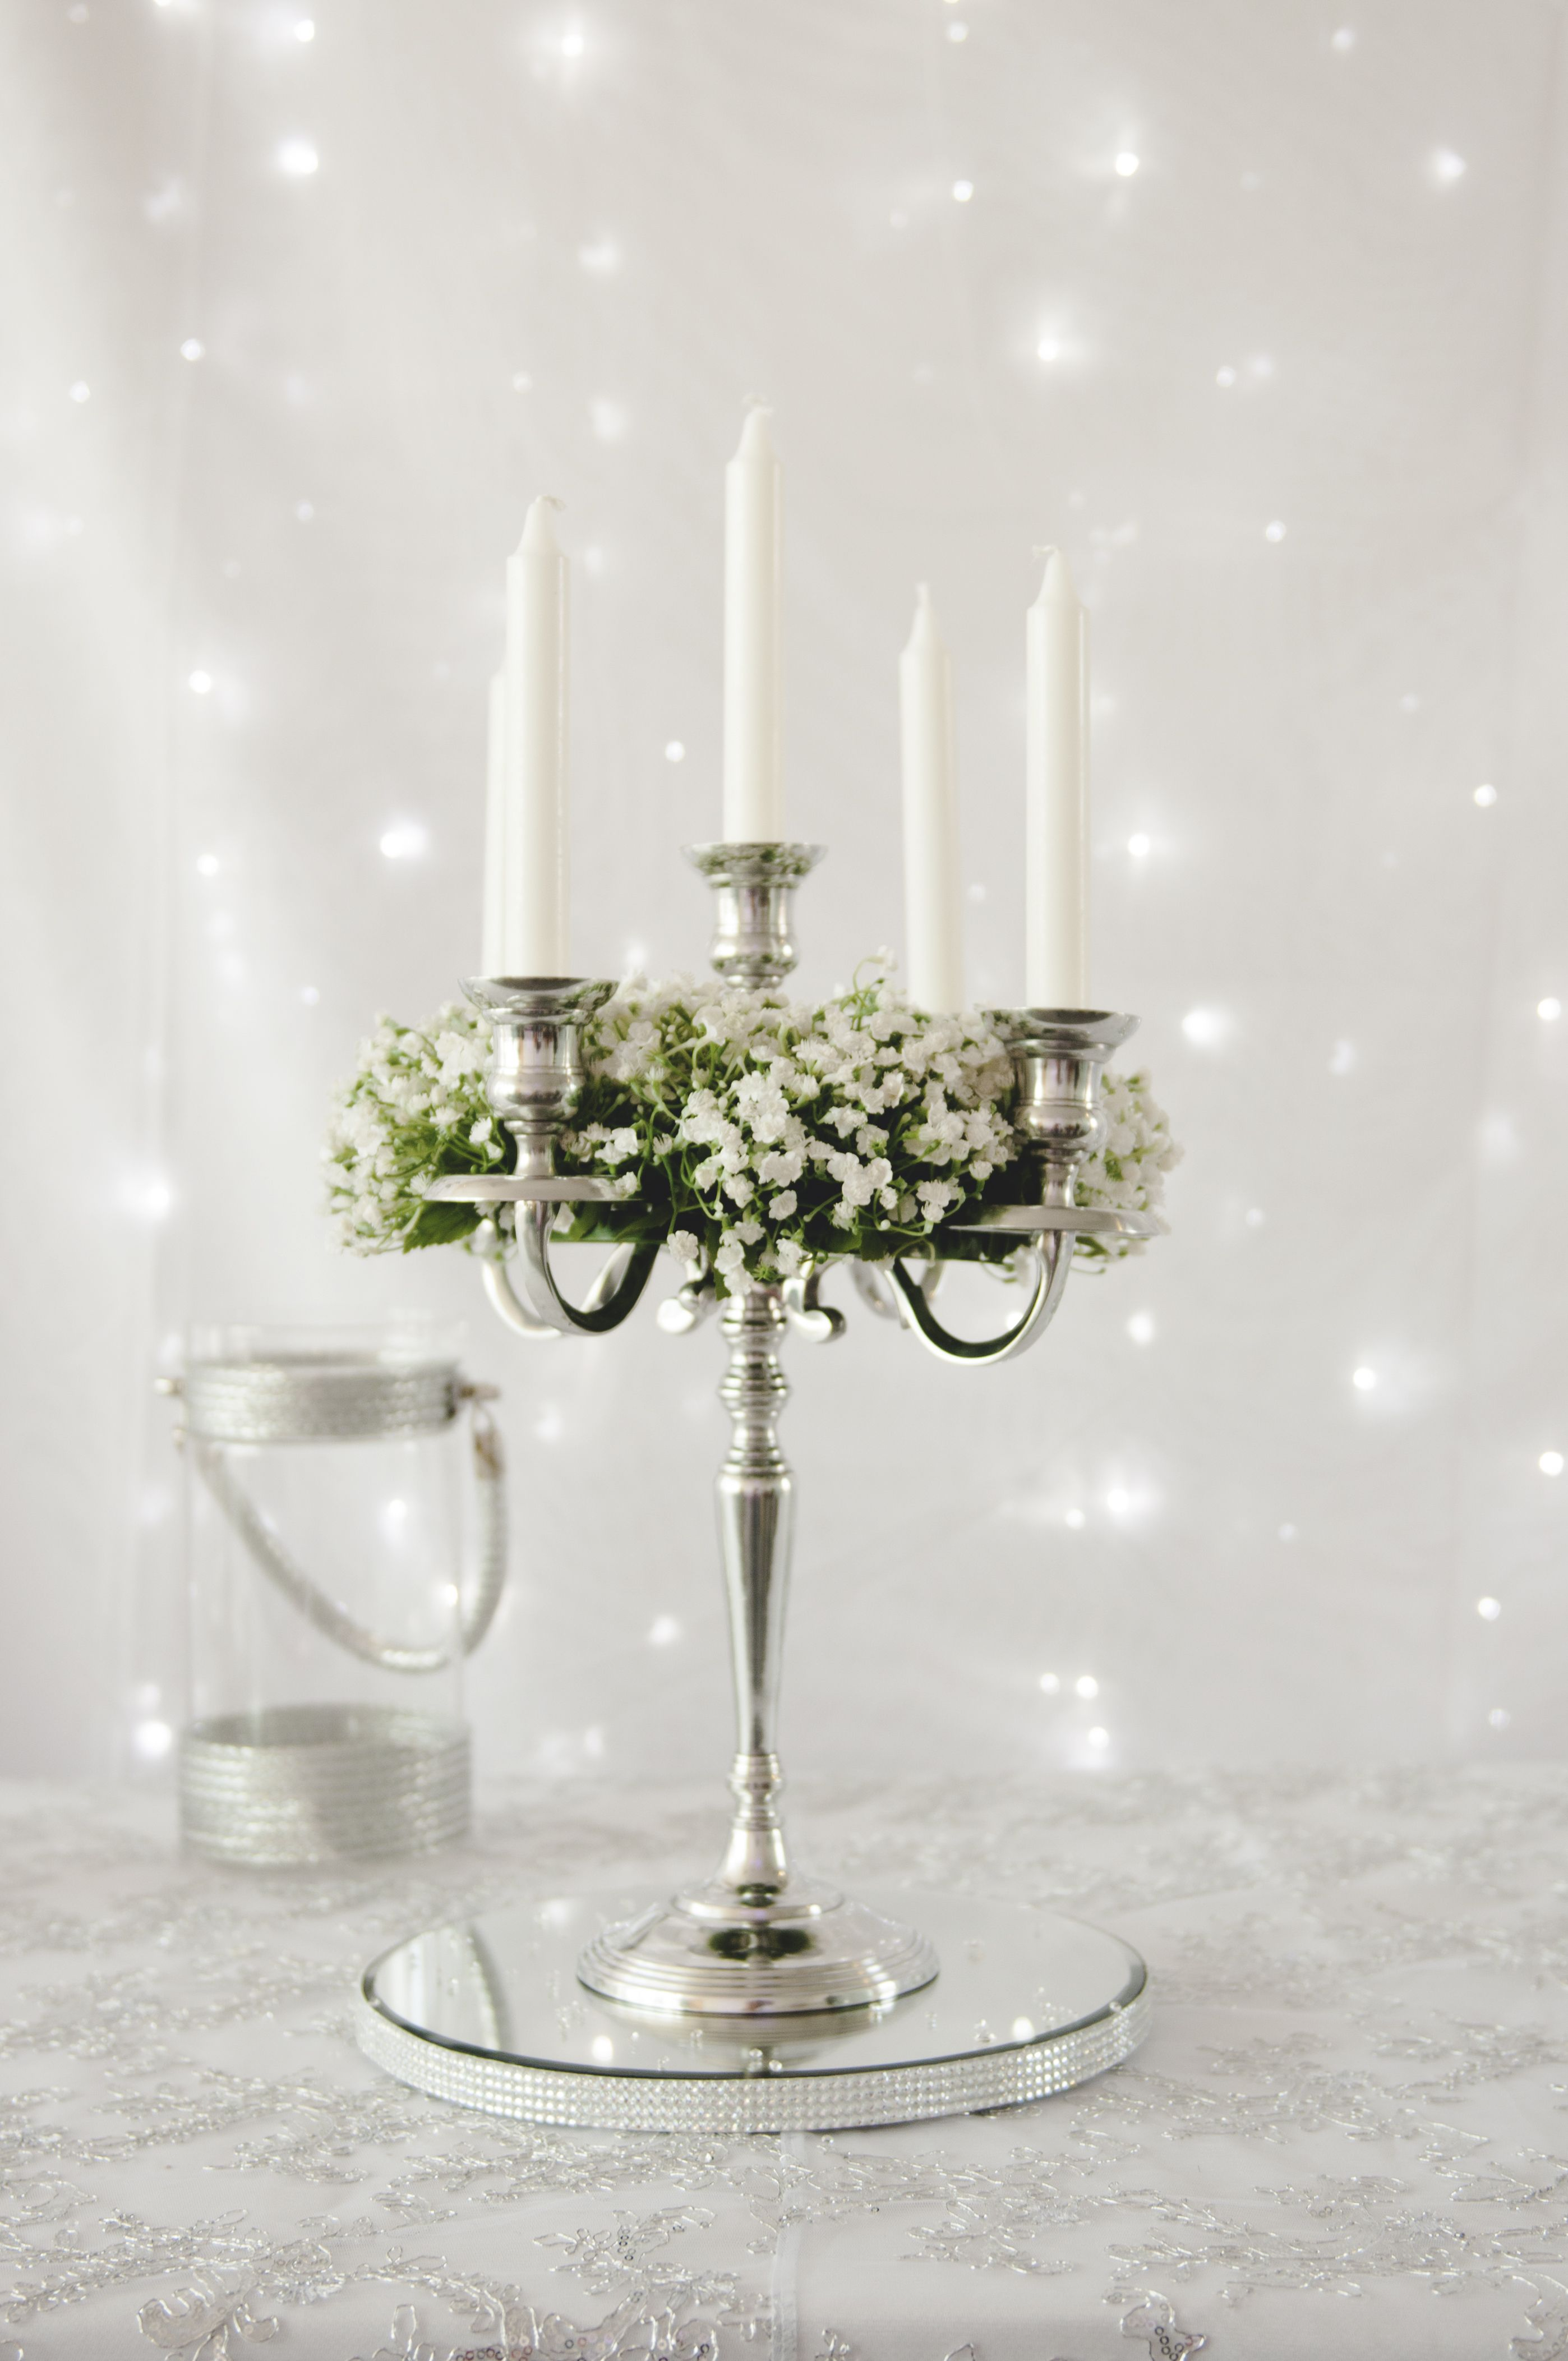 Just one of our many table centrepieces available to hire ...